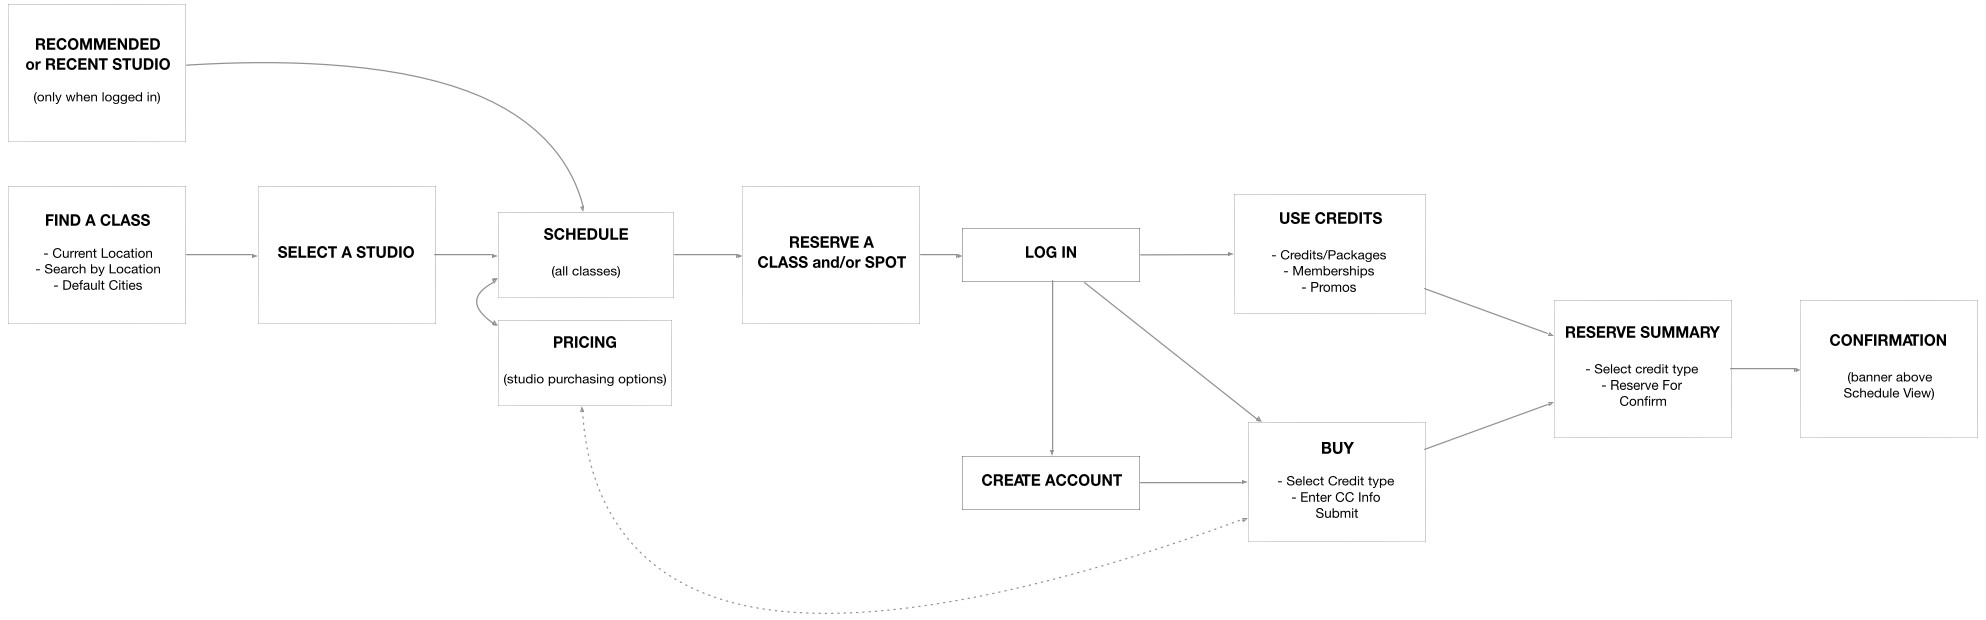 A user flow diagram representing a customer using the application.